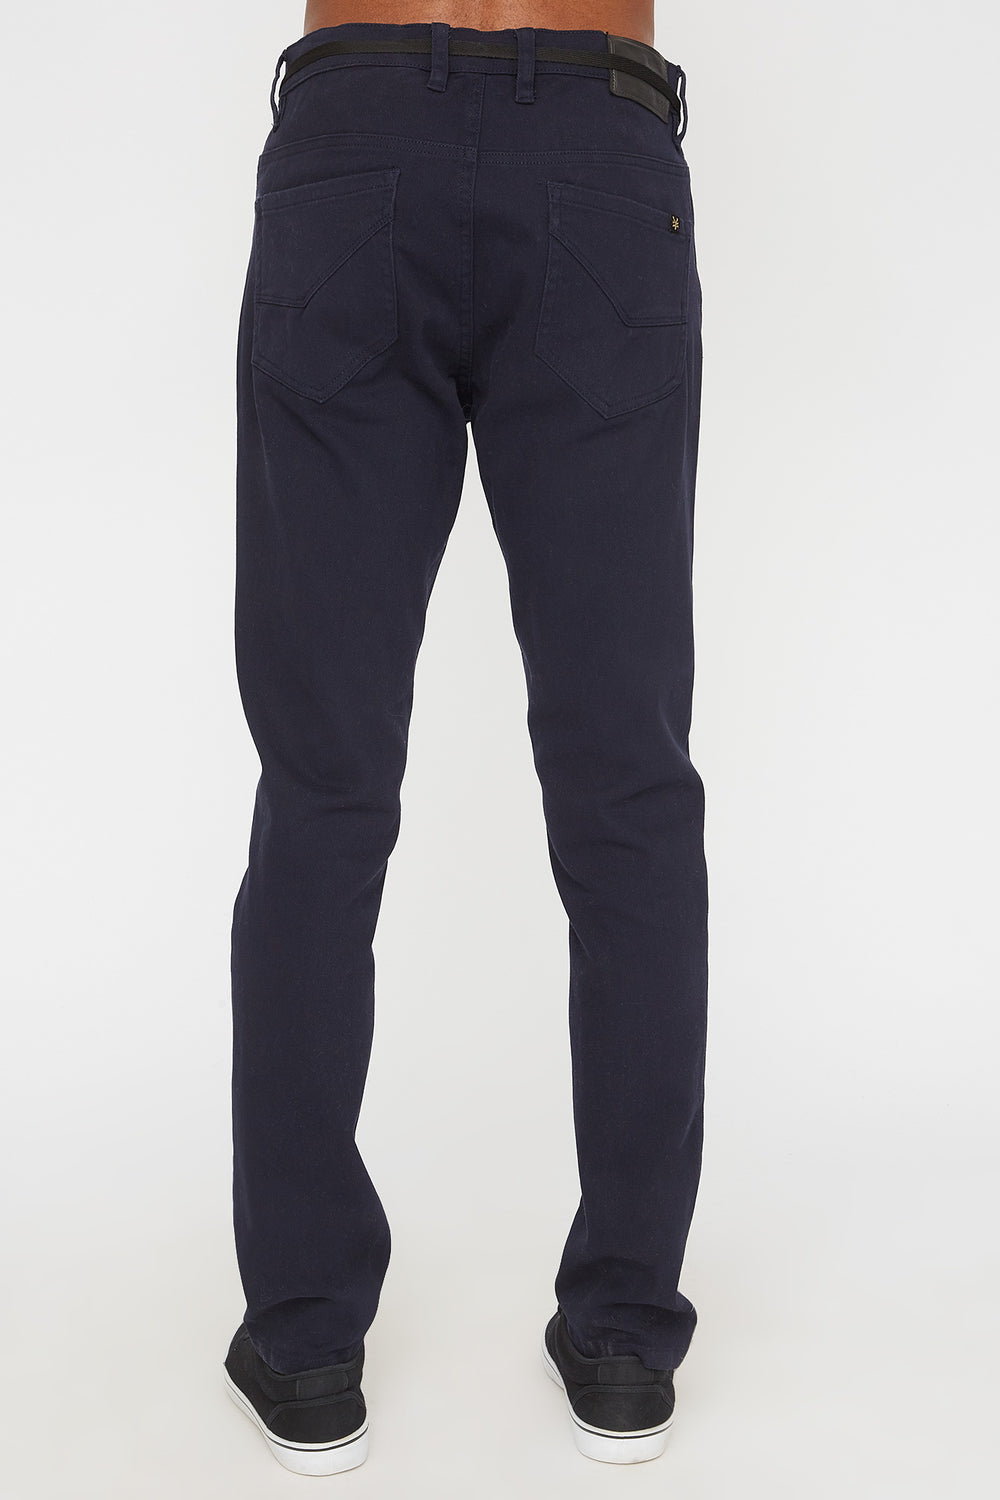 Zoo York Mens Stretch Skinny Colour Jeans Navy